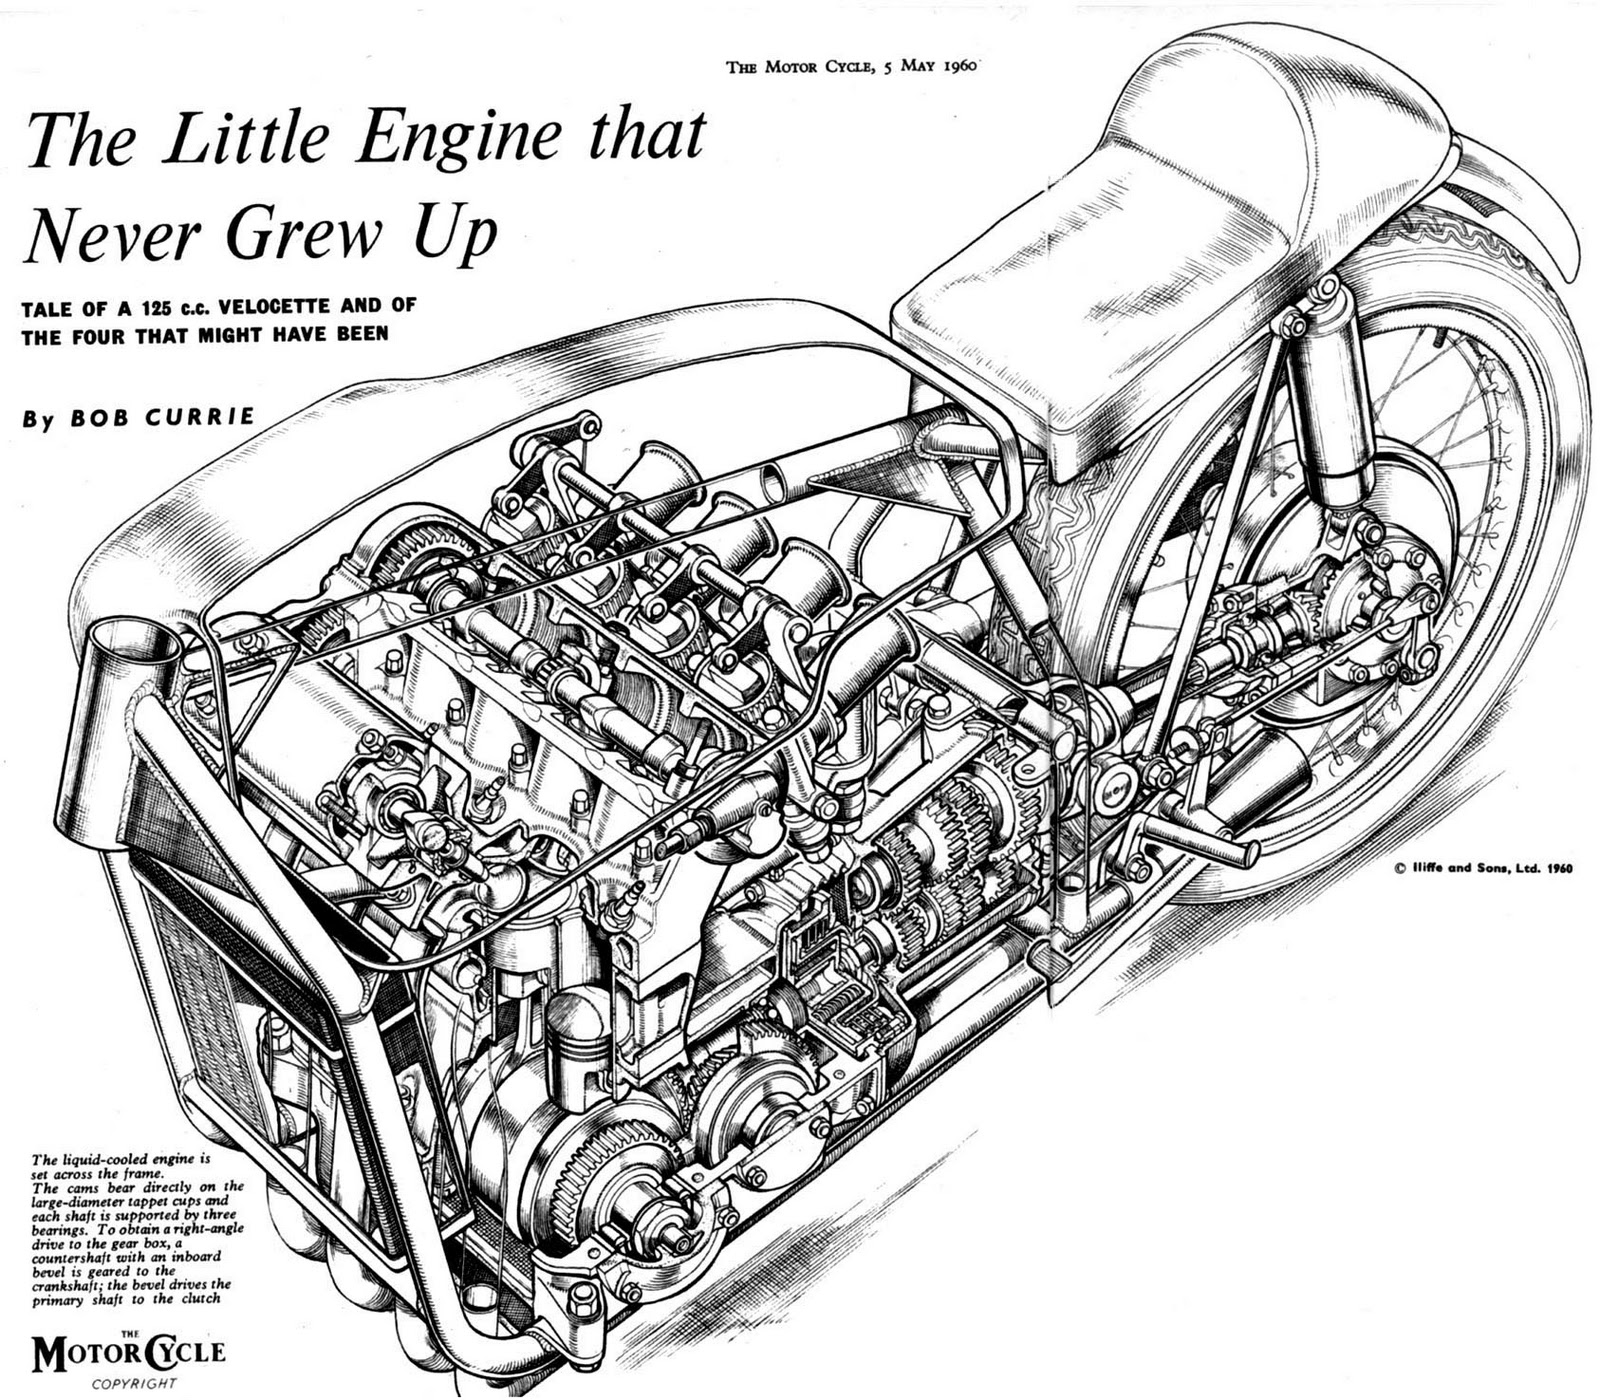 Royal Enfield Thunderbird 350 Wiring Diagram 44 Bullet Diagrams 875667 The Engine That Never Grew Up Sketch Of